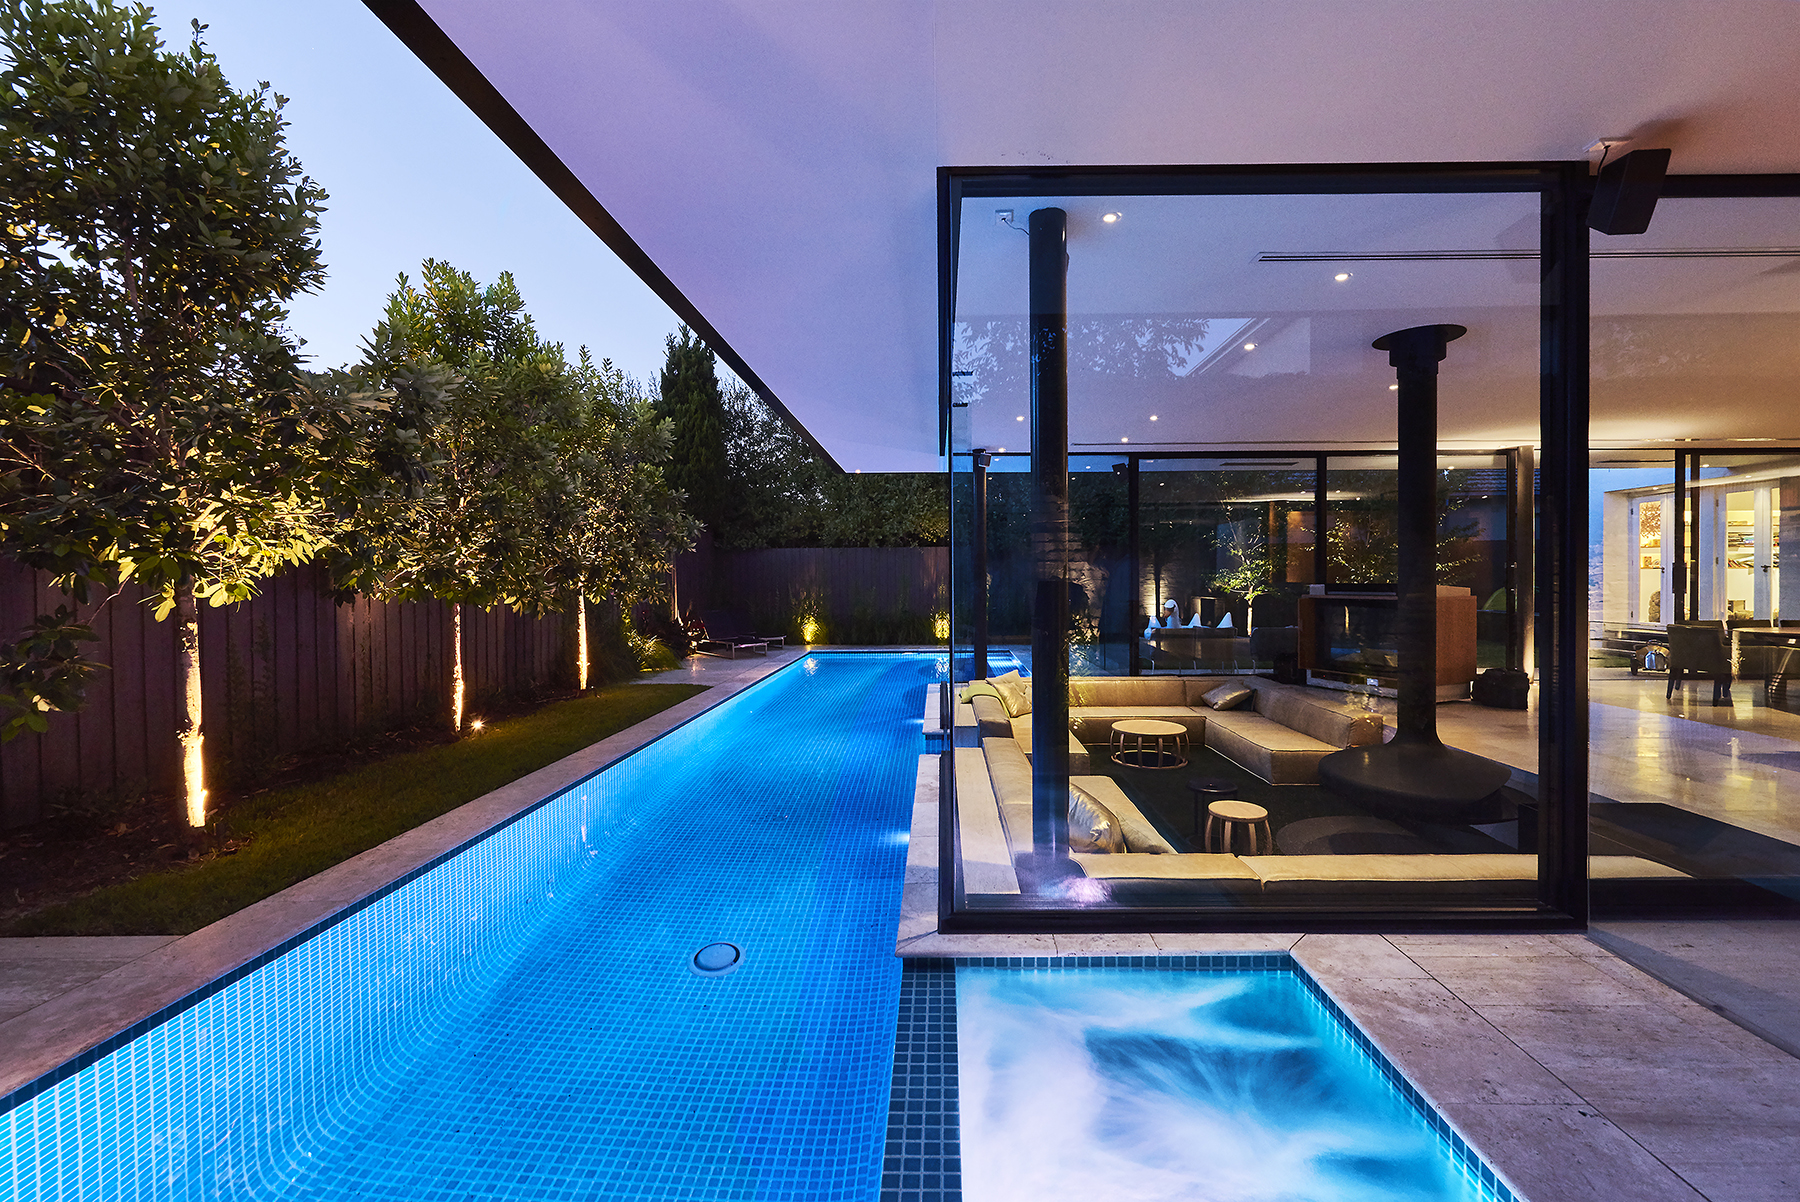 Oftb melbourne landscaping architecture pool design for Piscine a debordement